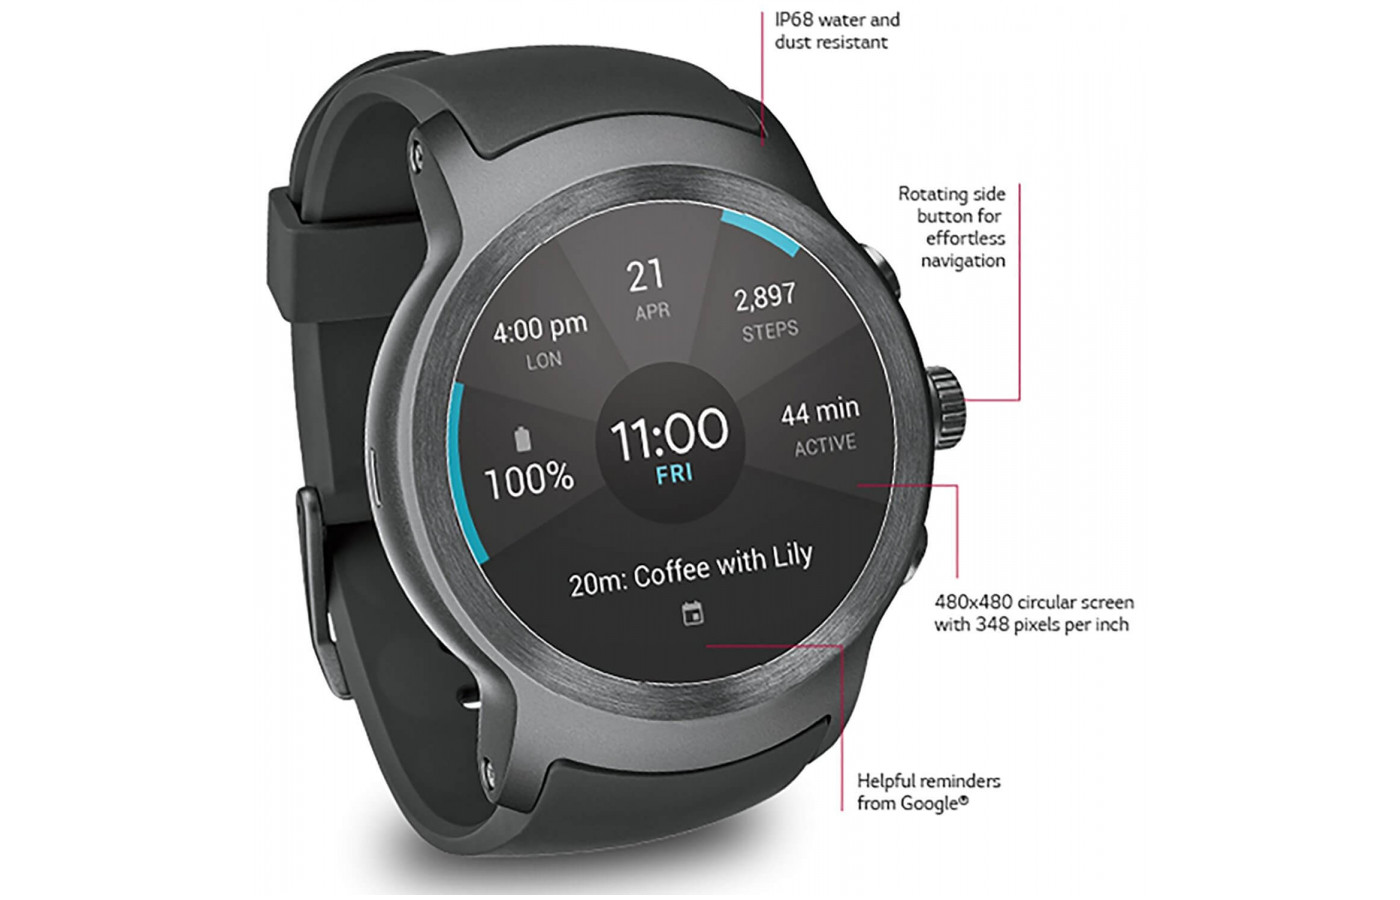 The LG Watch Sport features